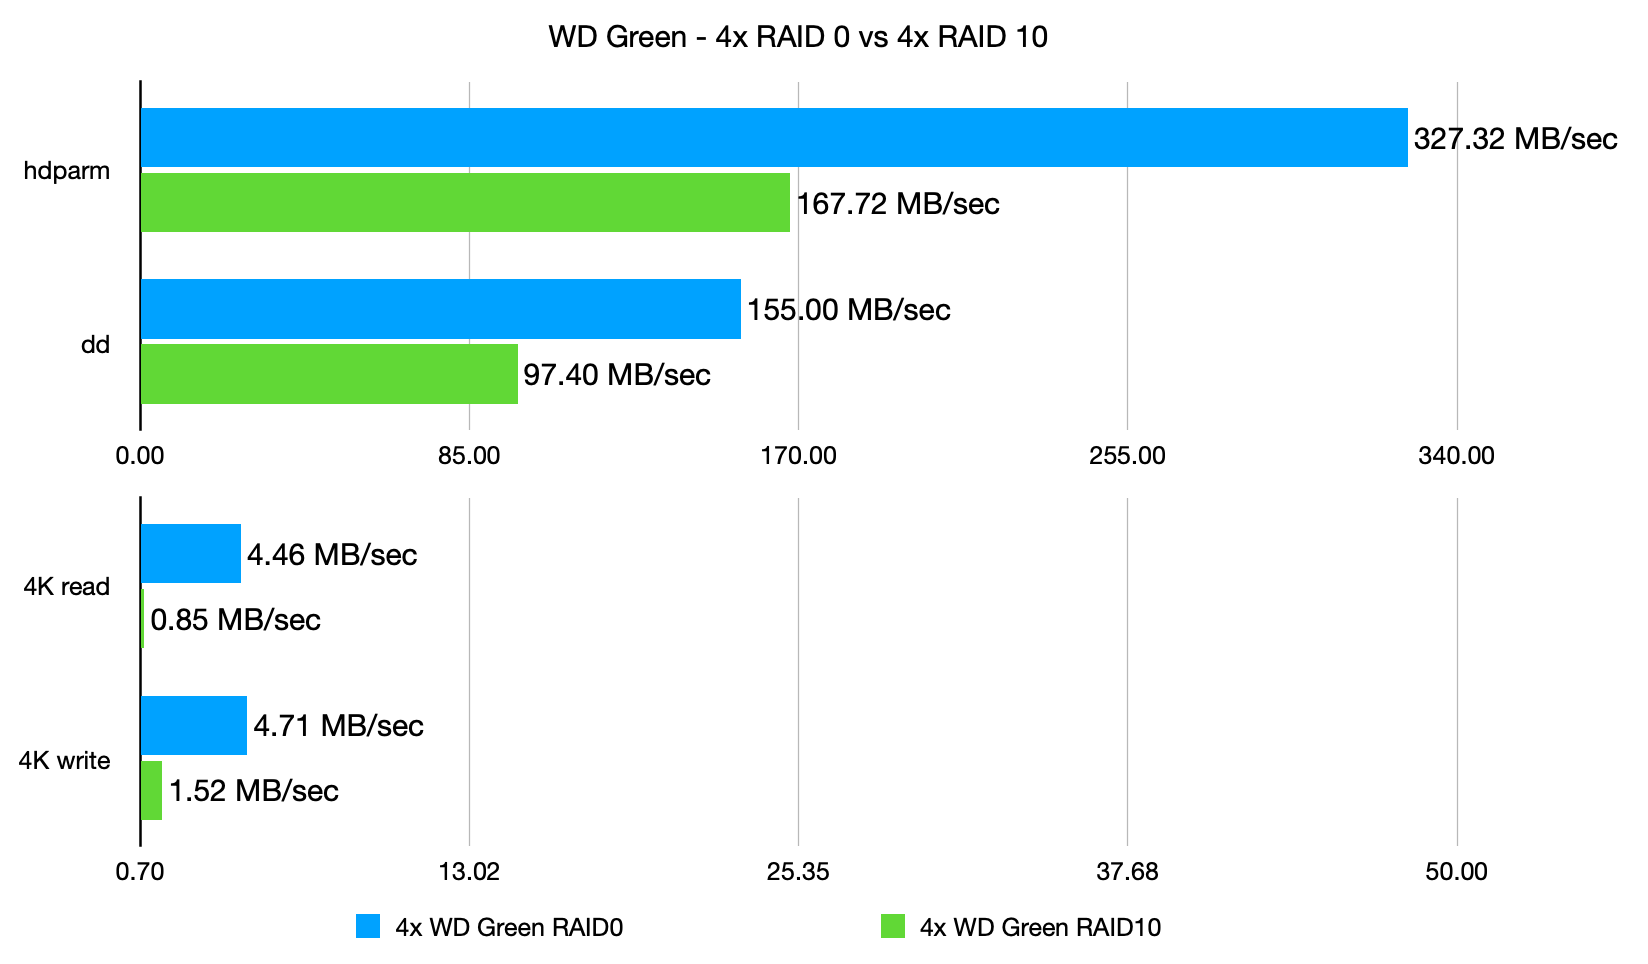 WD Green Hard drives - 4x in RAID 0 vs RAID 10